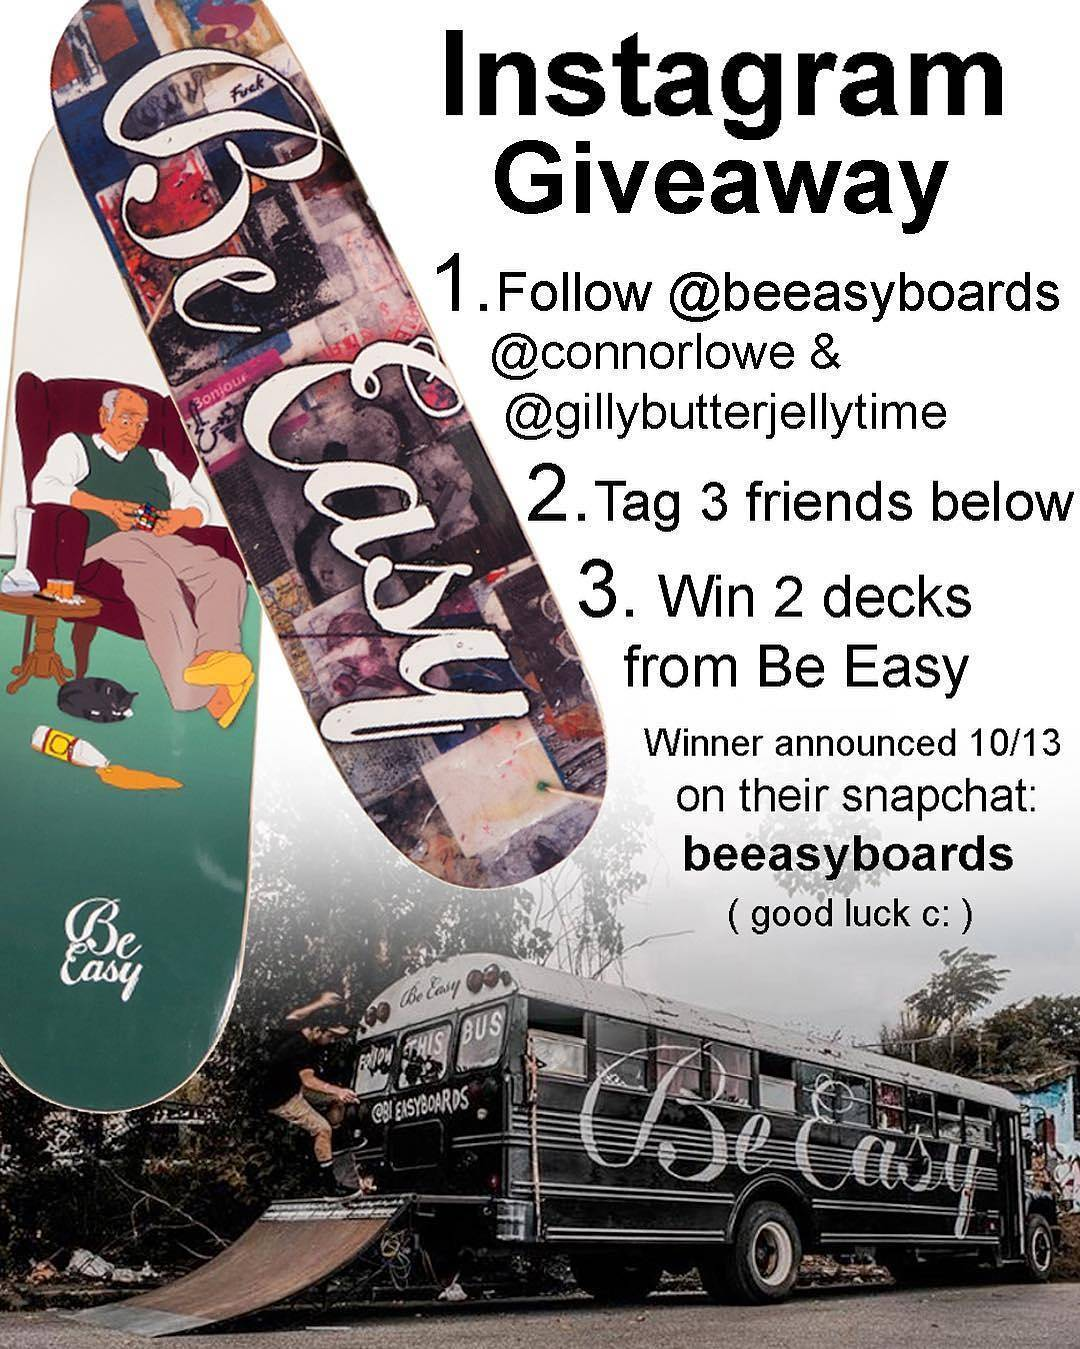 14583284 1201171576617165 5341607674498777088 n - Giveaway from @beeasyboards of two new decks!  To enter follow @beeasyboards, @c...